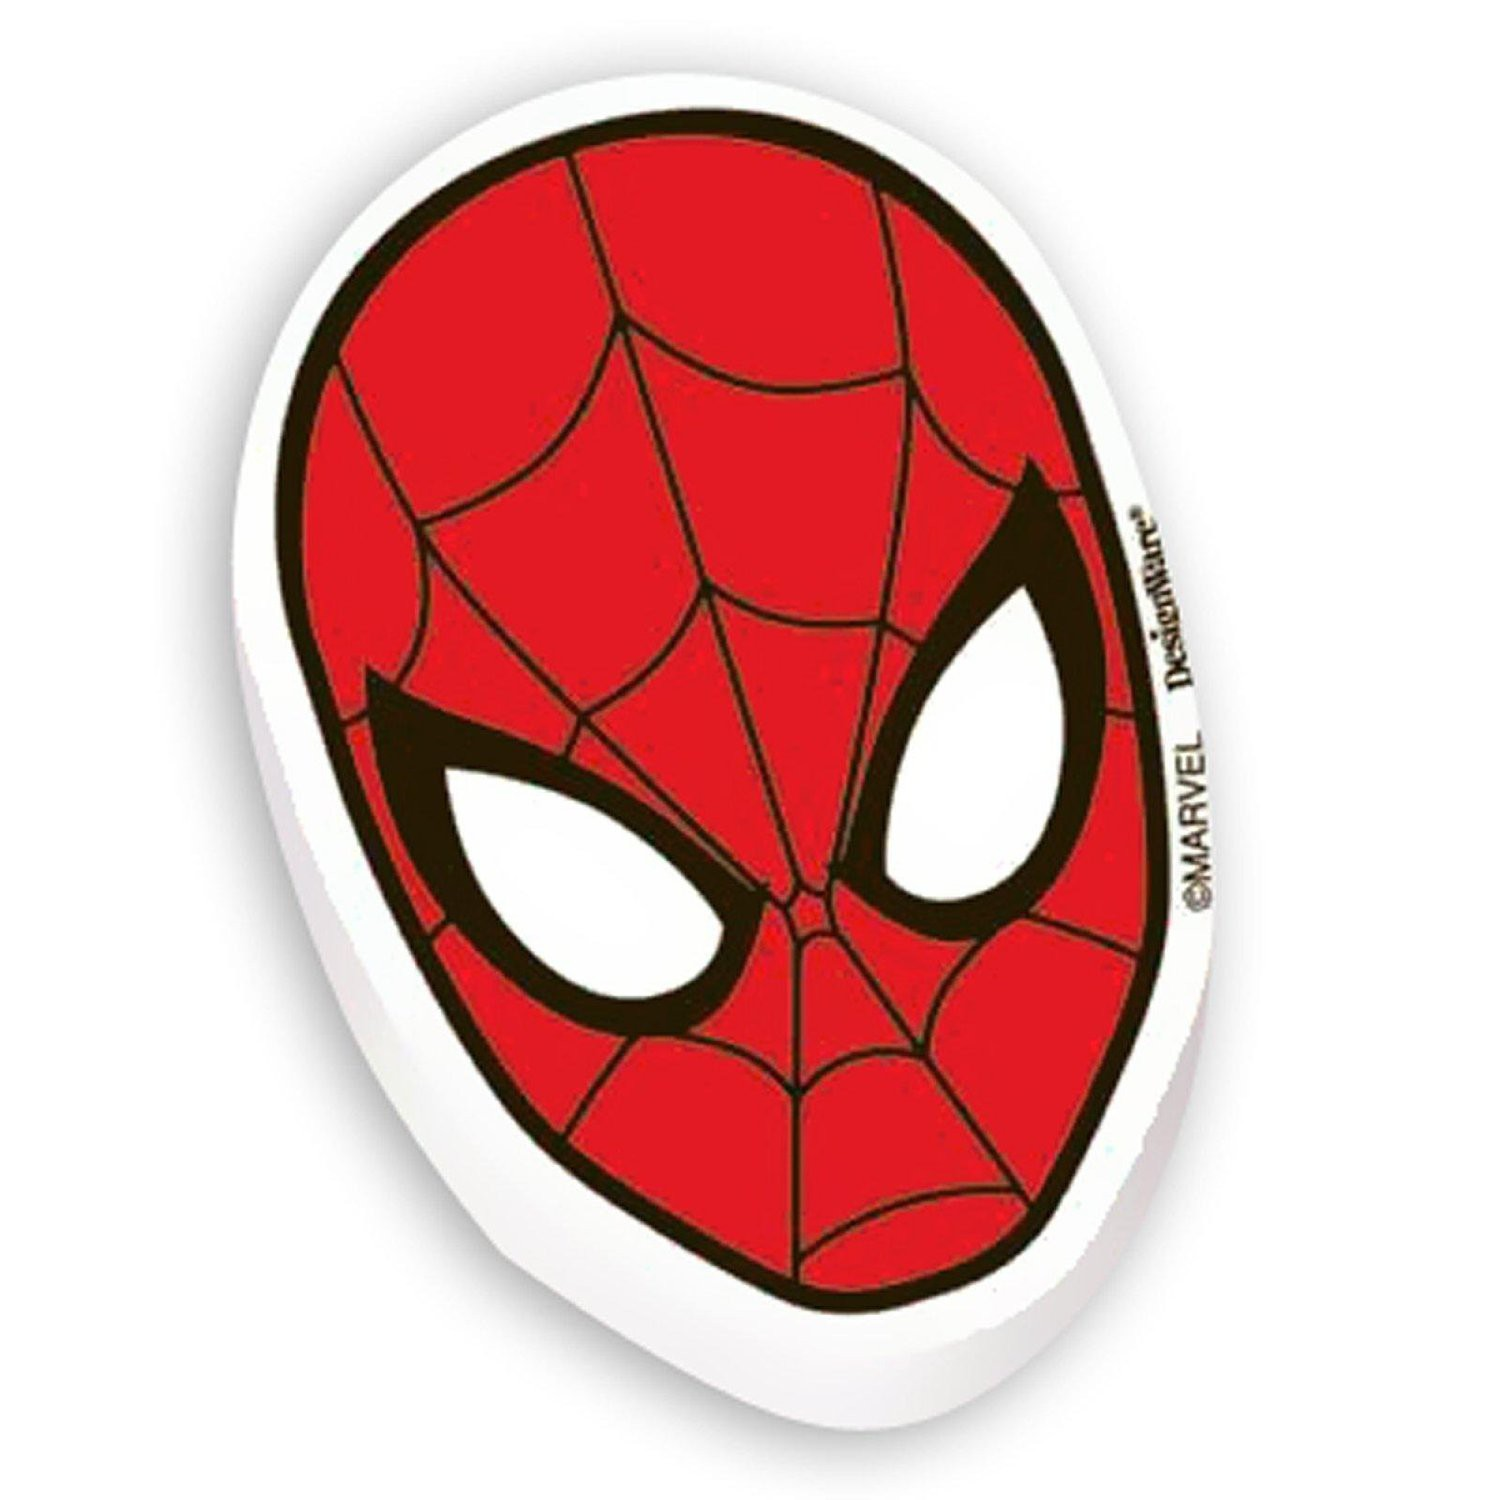 SPIDERMAN MINI ERASERS PARTY FAVOUR - PACK OF 12